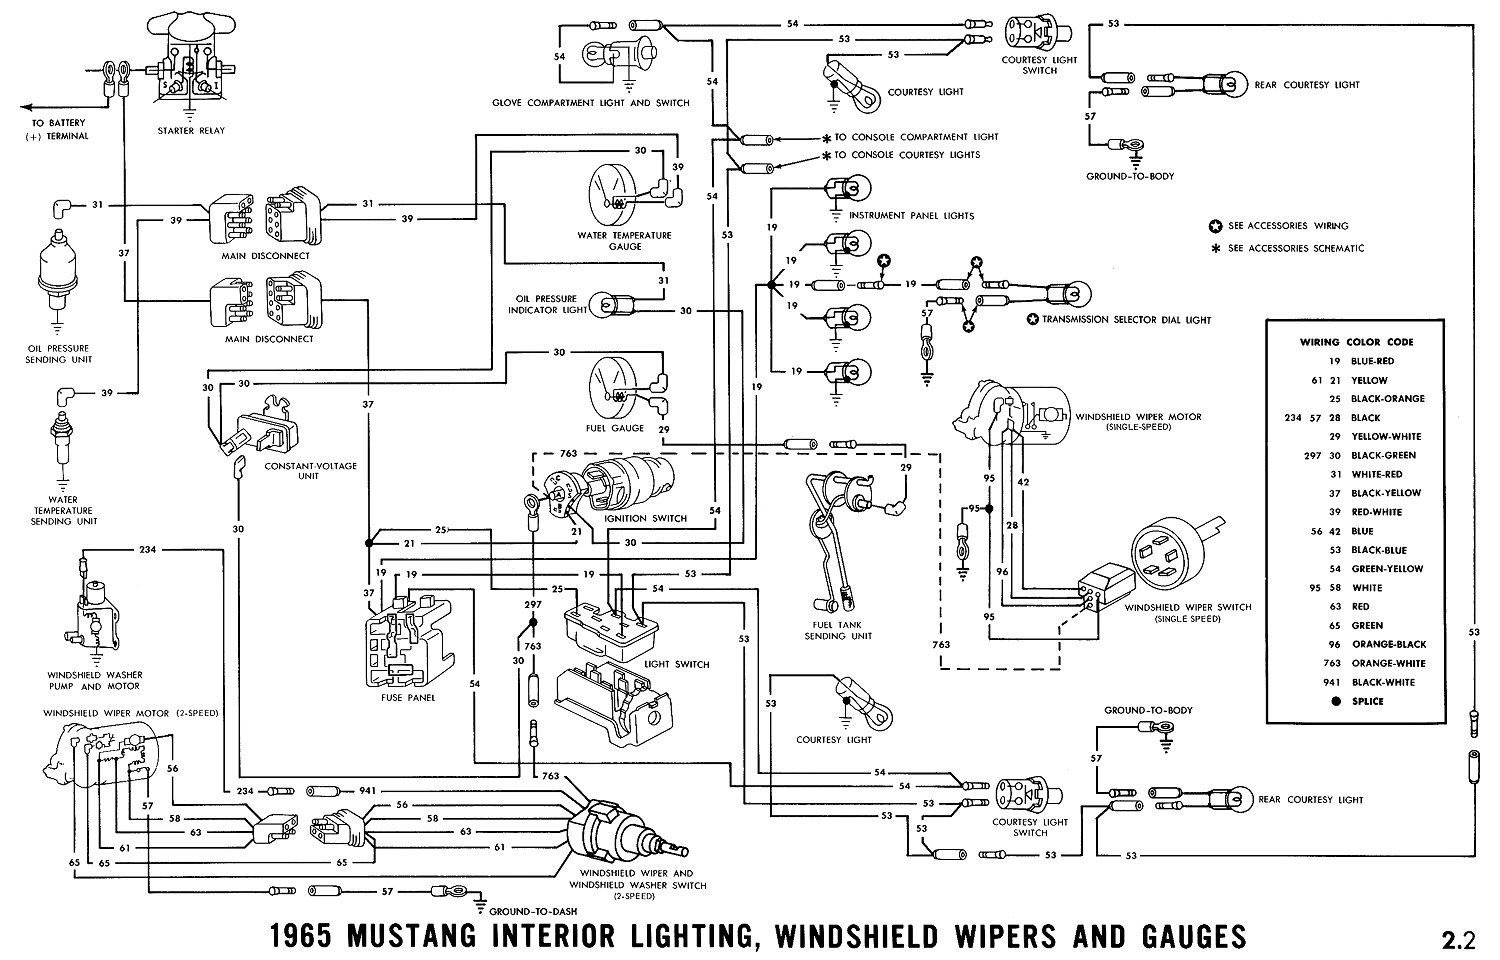 1965g 1965 mustang wiring diagrams average joe restoration 1970 mustang radio wiring diagram at virtualis.co